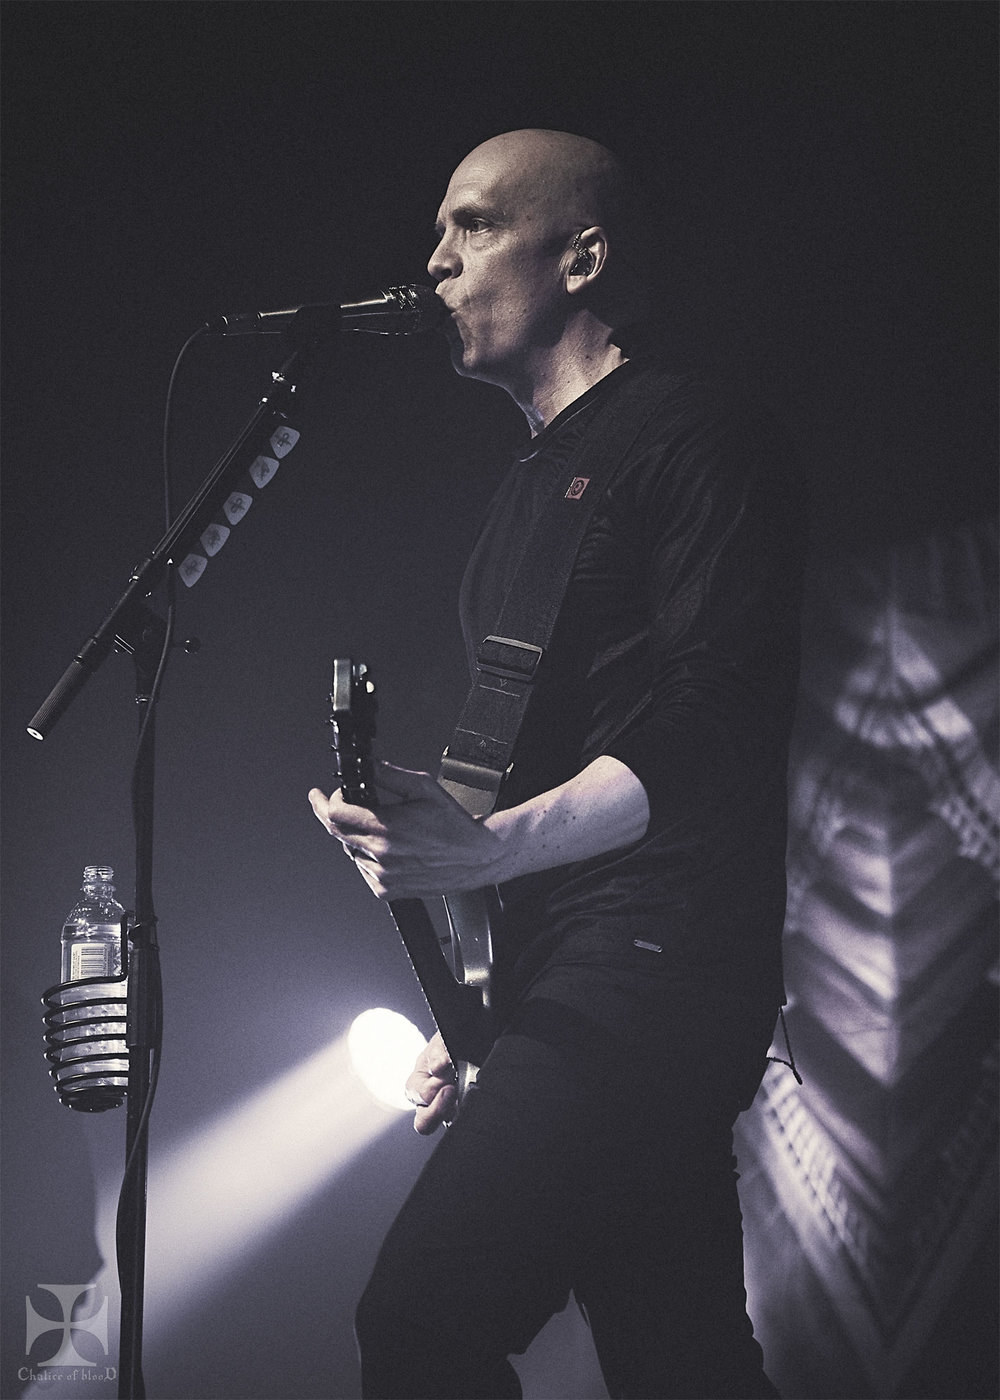 2017.05-Devin-Townsend---19-Exposure-watermarked.jpg